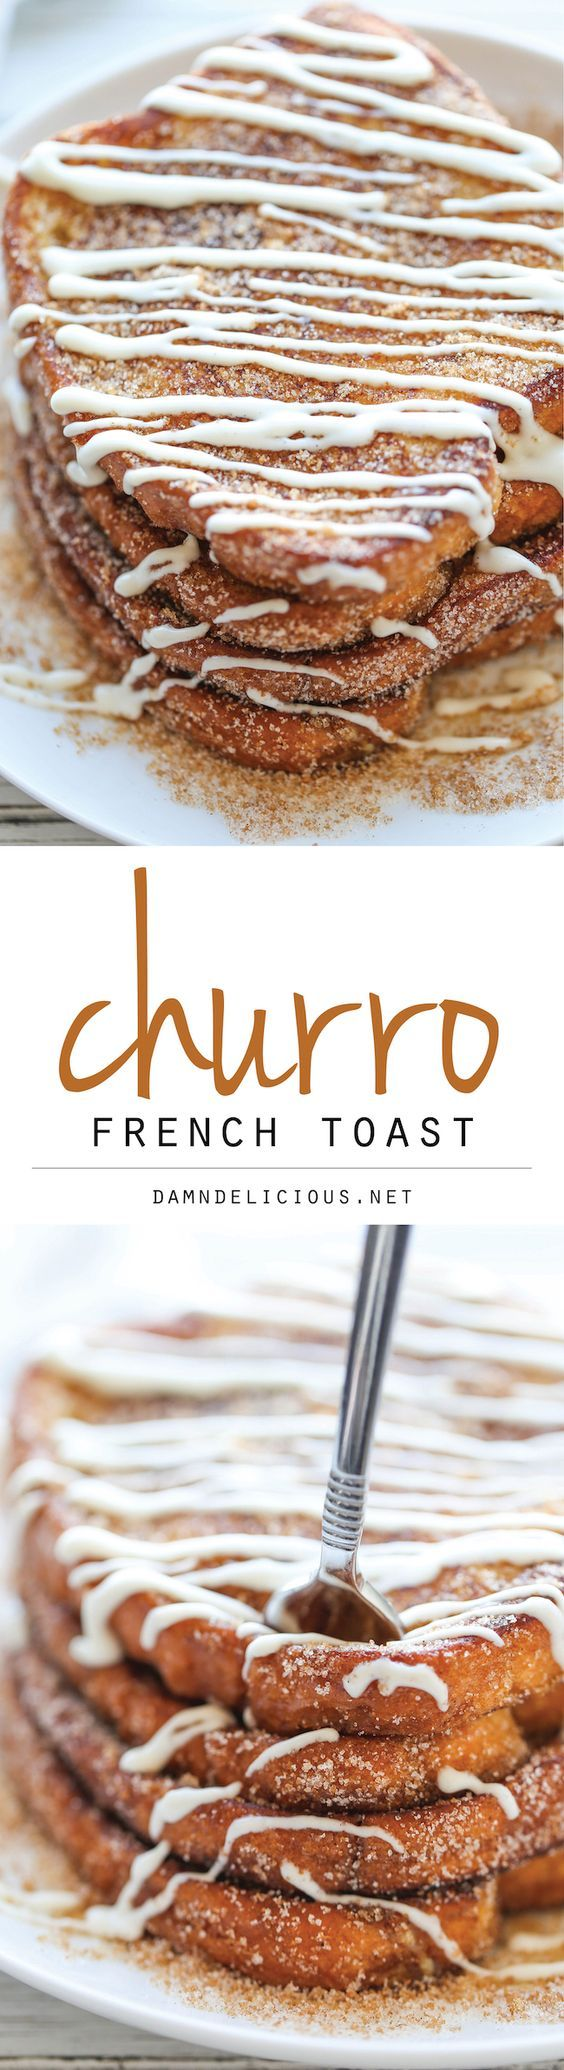 Churro French Toast - The most amazing, most buttery French toast you will ever have, coated in cinnamon sugar and drizzled with an epic cream cheese glaze!: